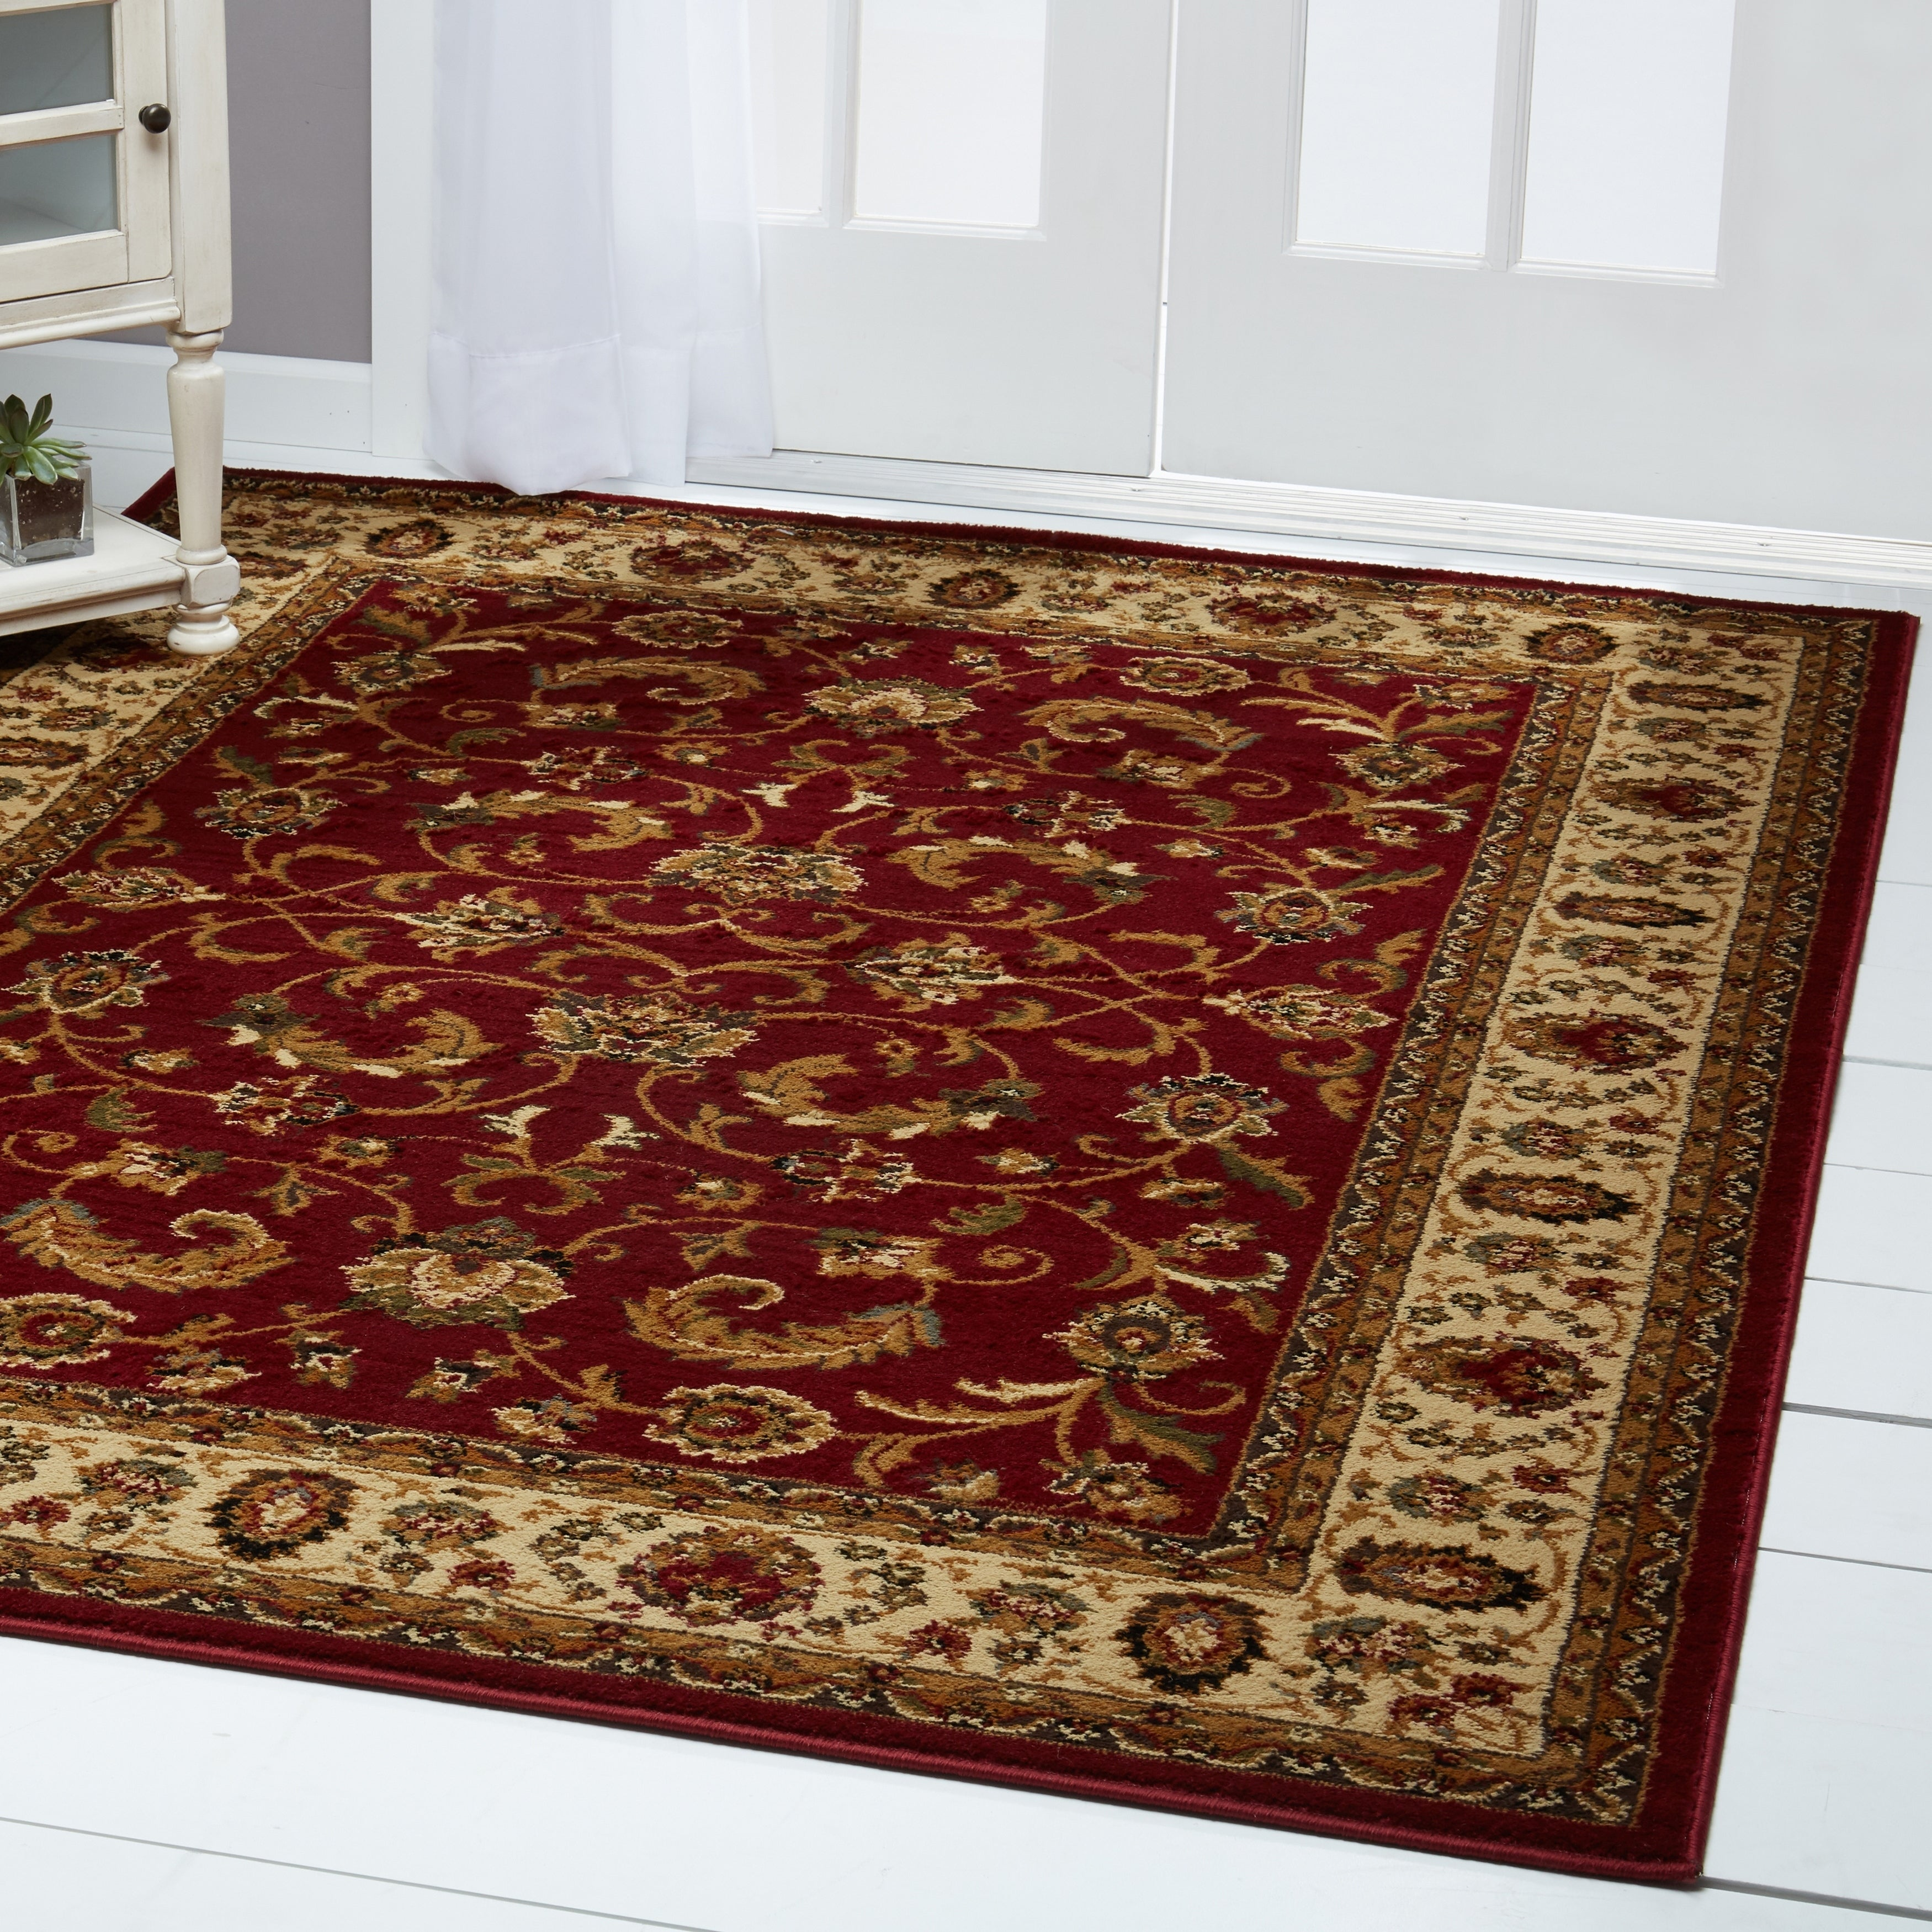 Details About Home Dynamix Royalty Collection Traditional Machine Made Polypropylene Area Rug